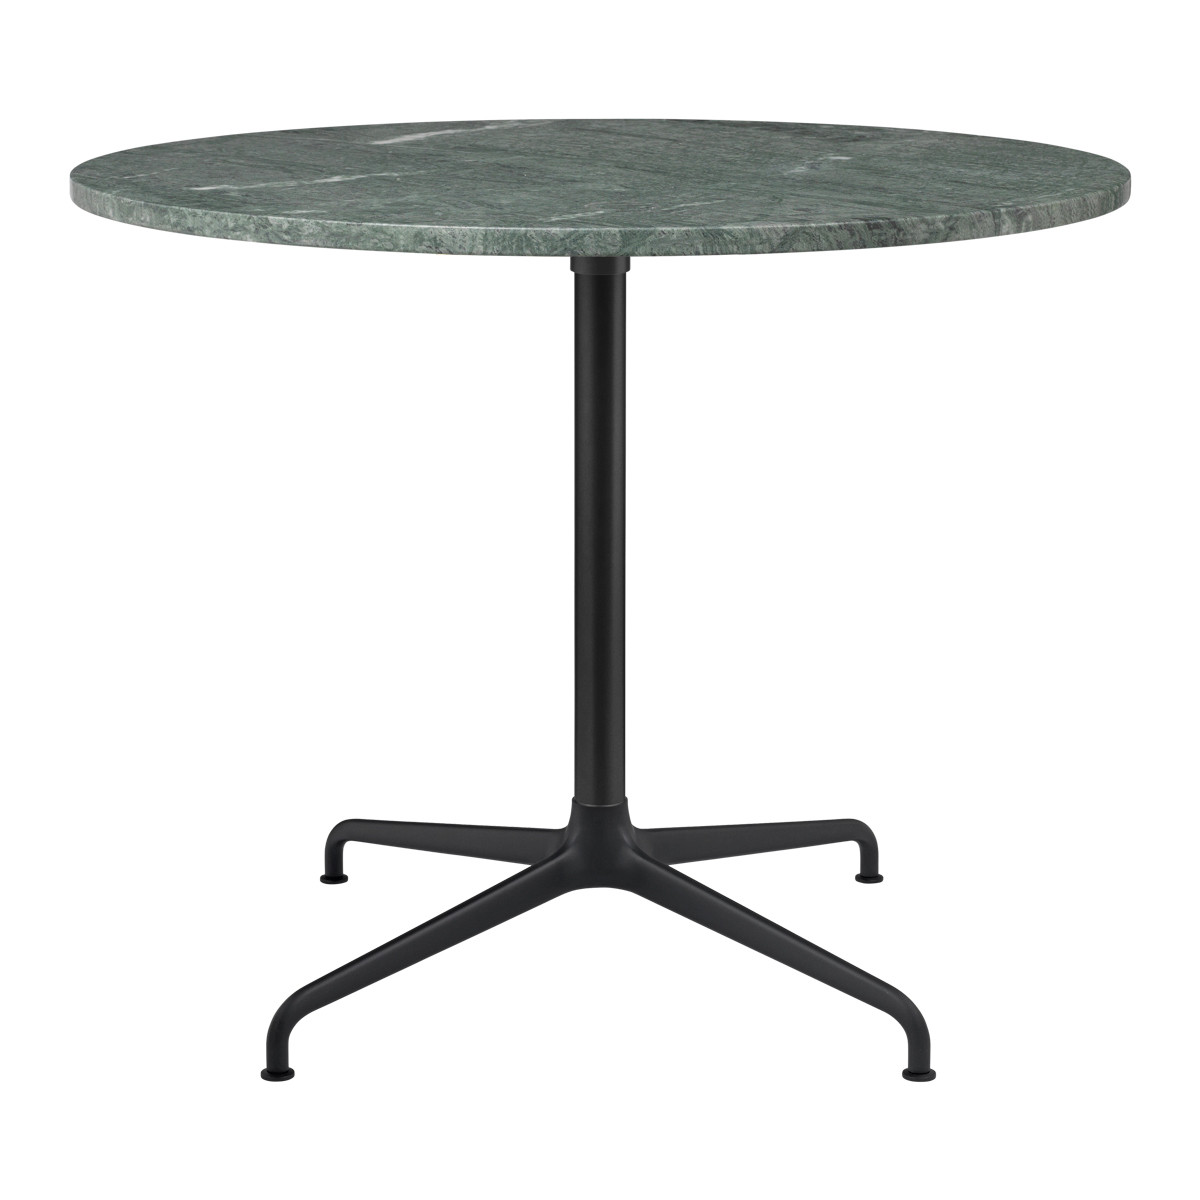 Gubi Beetle Dining Table - Round